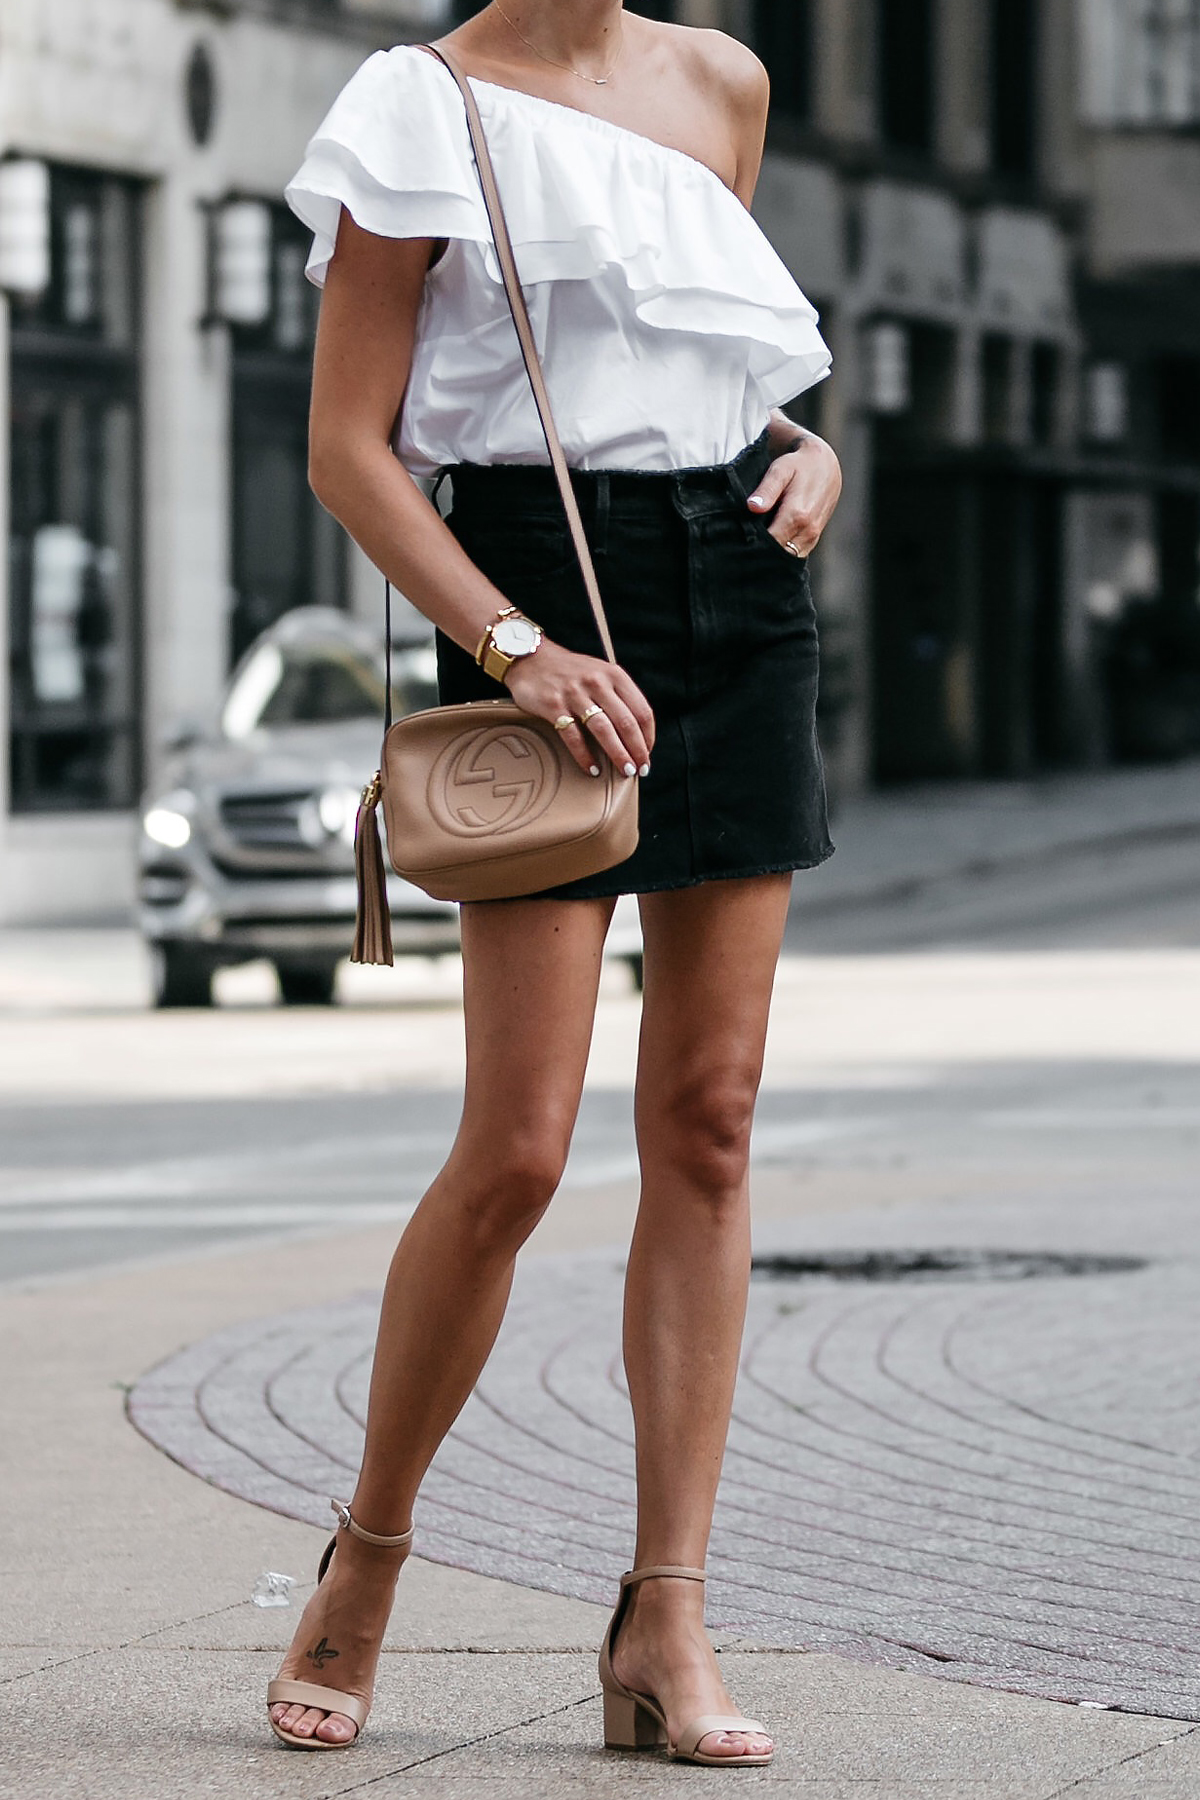 Nordstrom White One Shoulder Ruffle Top Frame Black Denim Skirt Outfit Nude Ankle Strap Heeled Sandals Gucci Soho Handbag Fashion Jackson Dallas Blogger Fashion Blogger Street Style